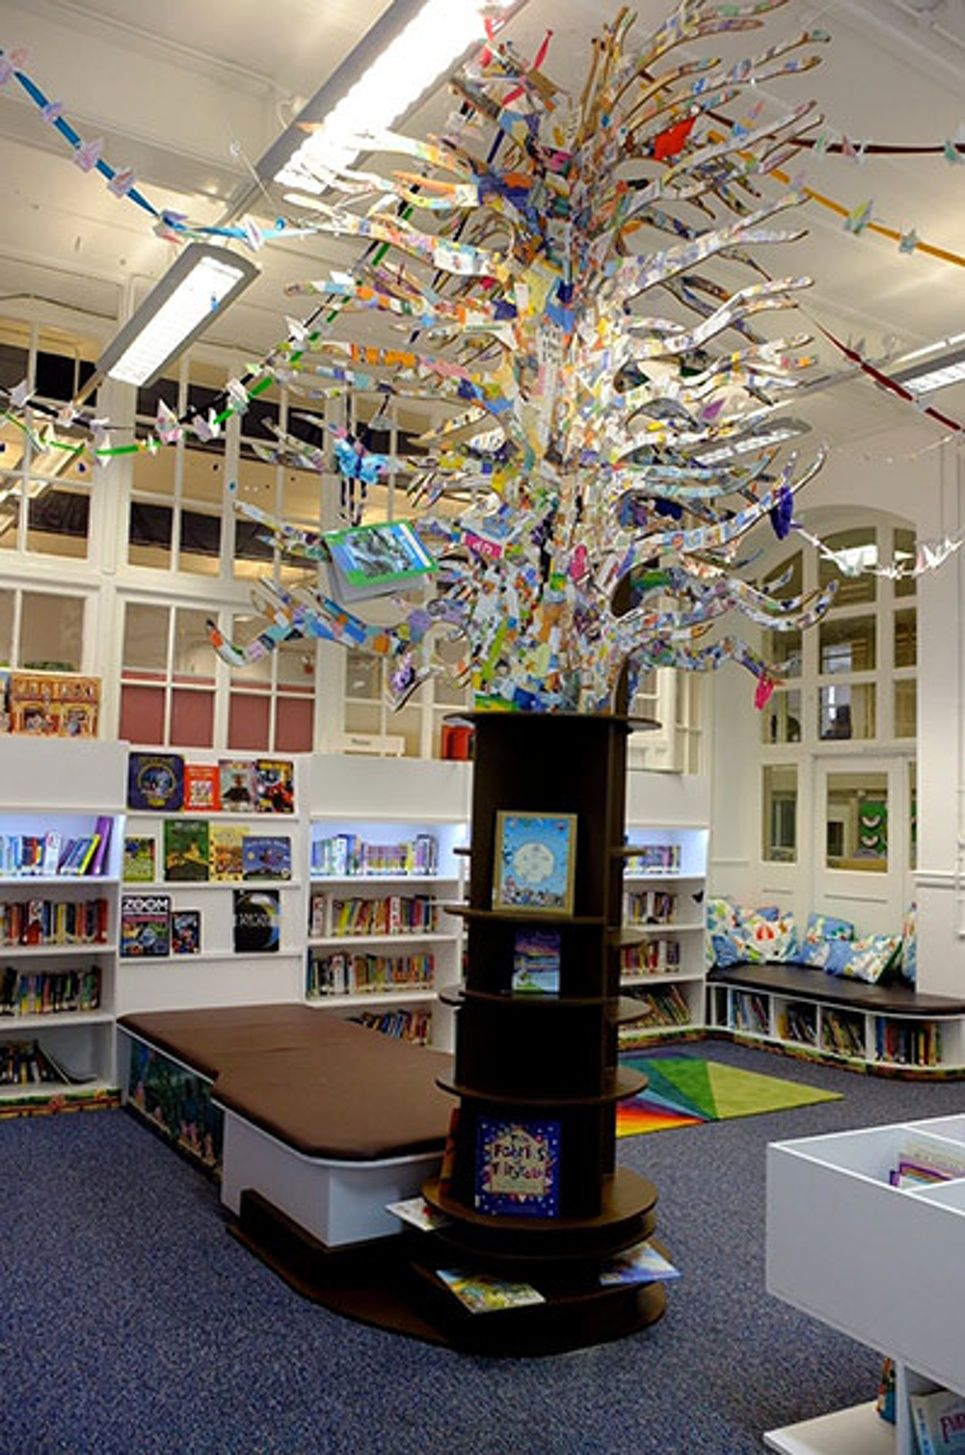 Inspiring classrooms and learning environments – in pictures | Teacher Network | The Guardian